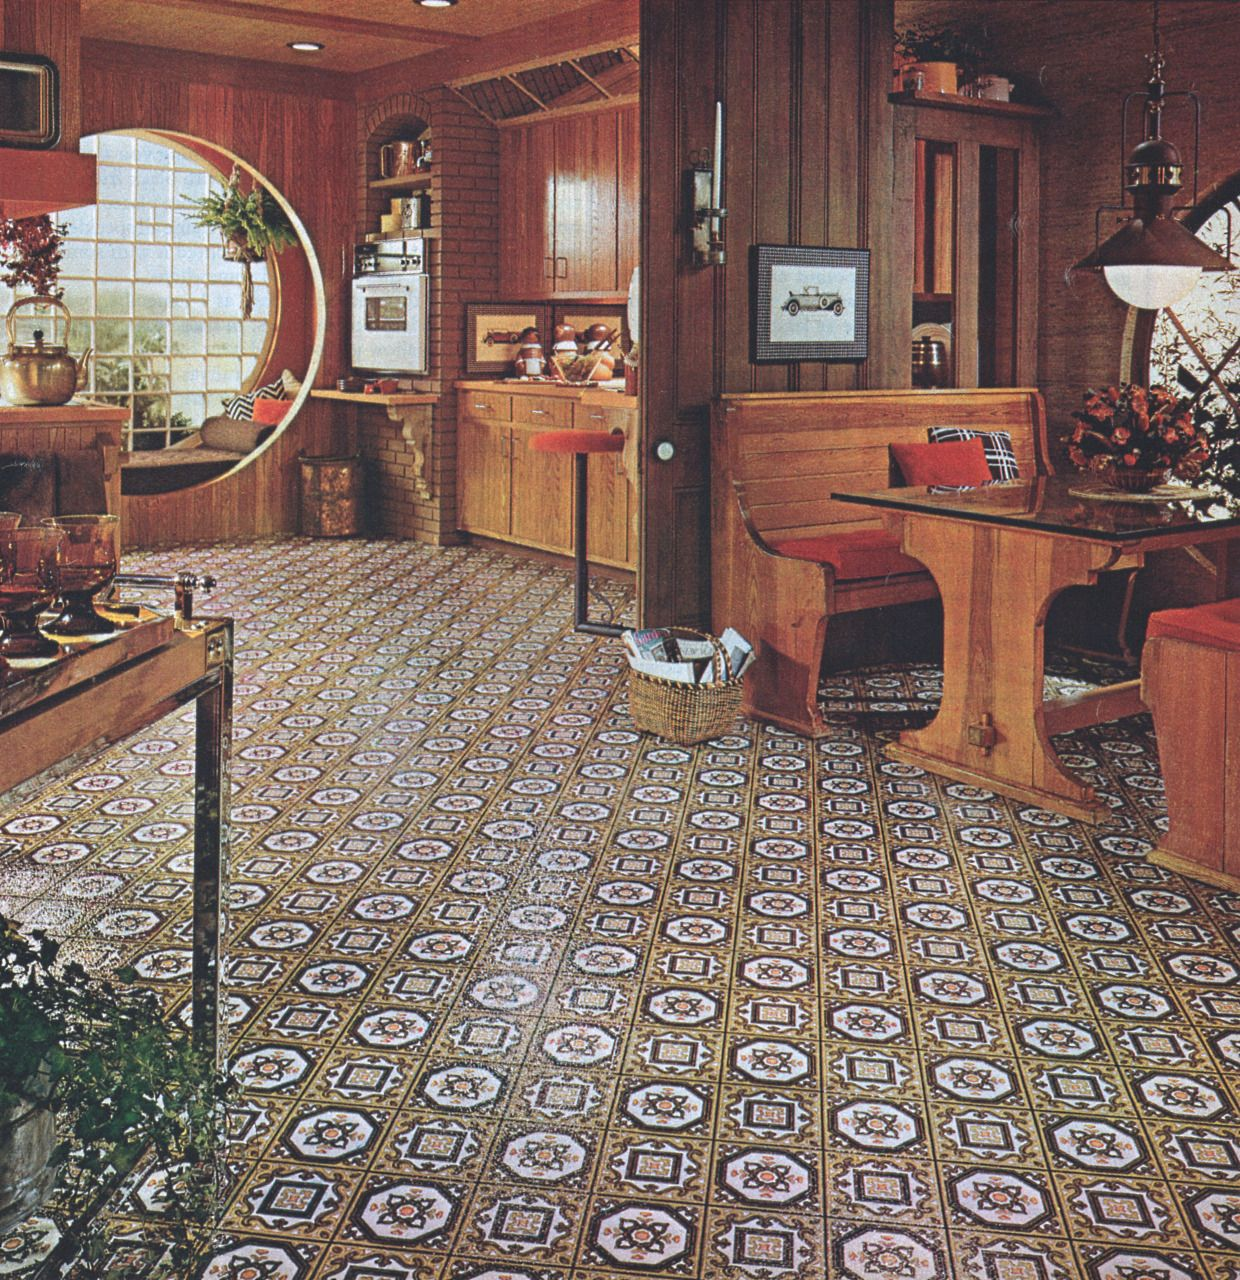 This is the flooring in my kitchen in my 1976 Marlette